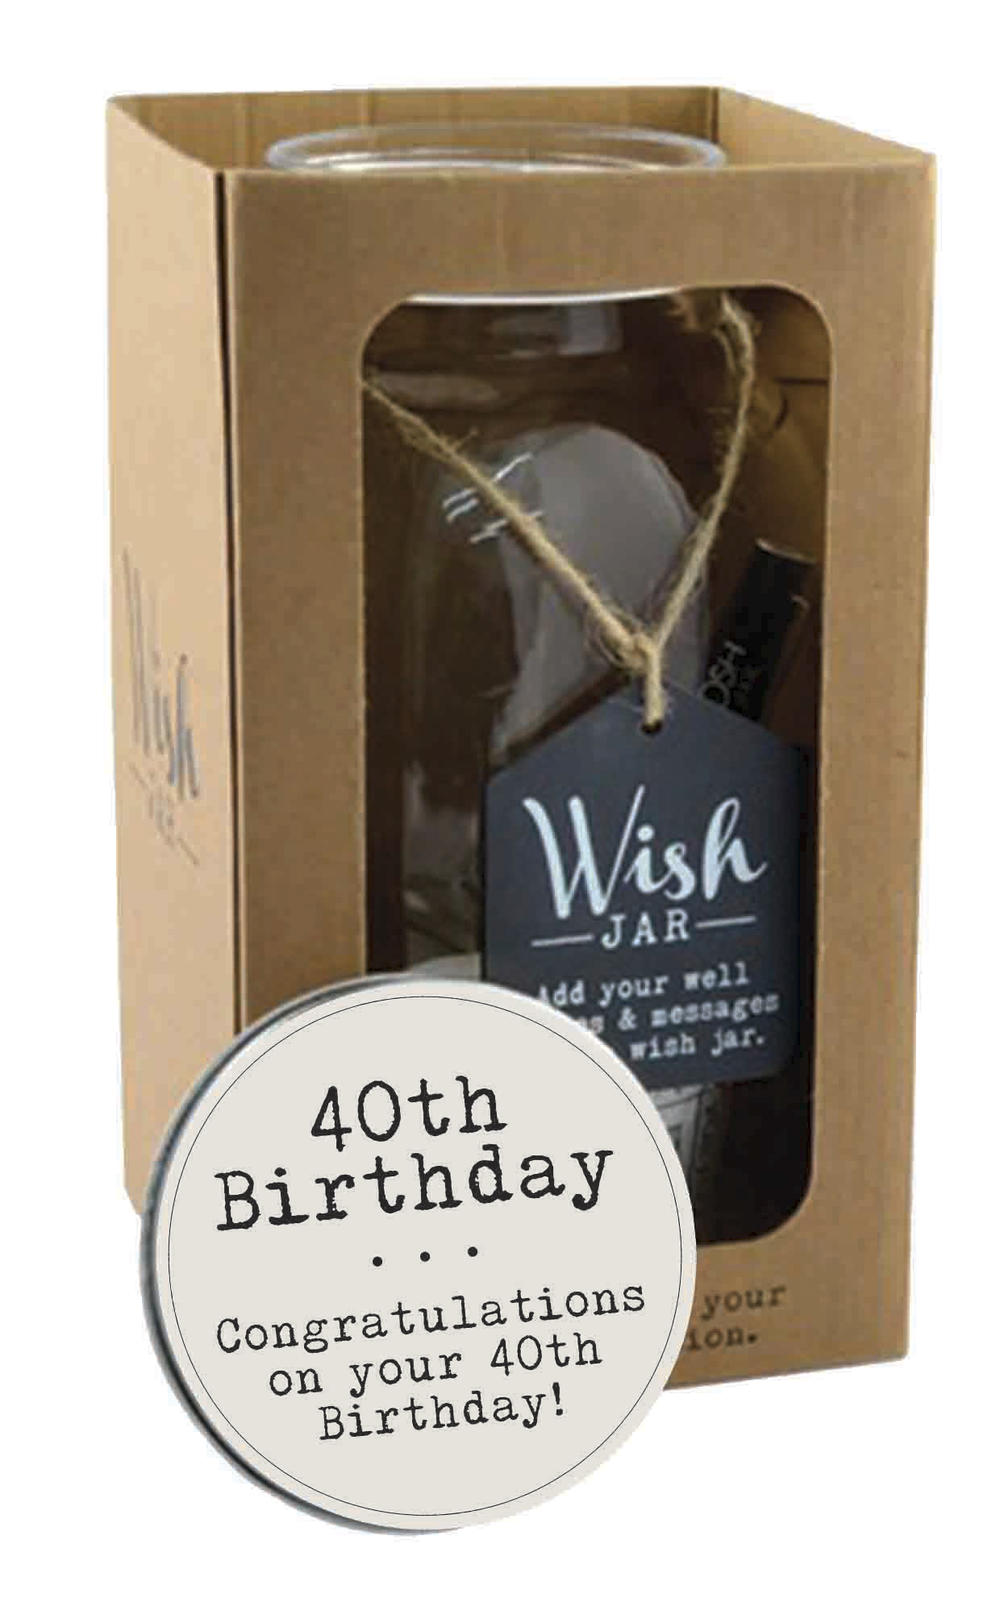 Splosh 40th Birthday Wish Jar Gift Idea